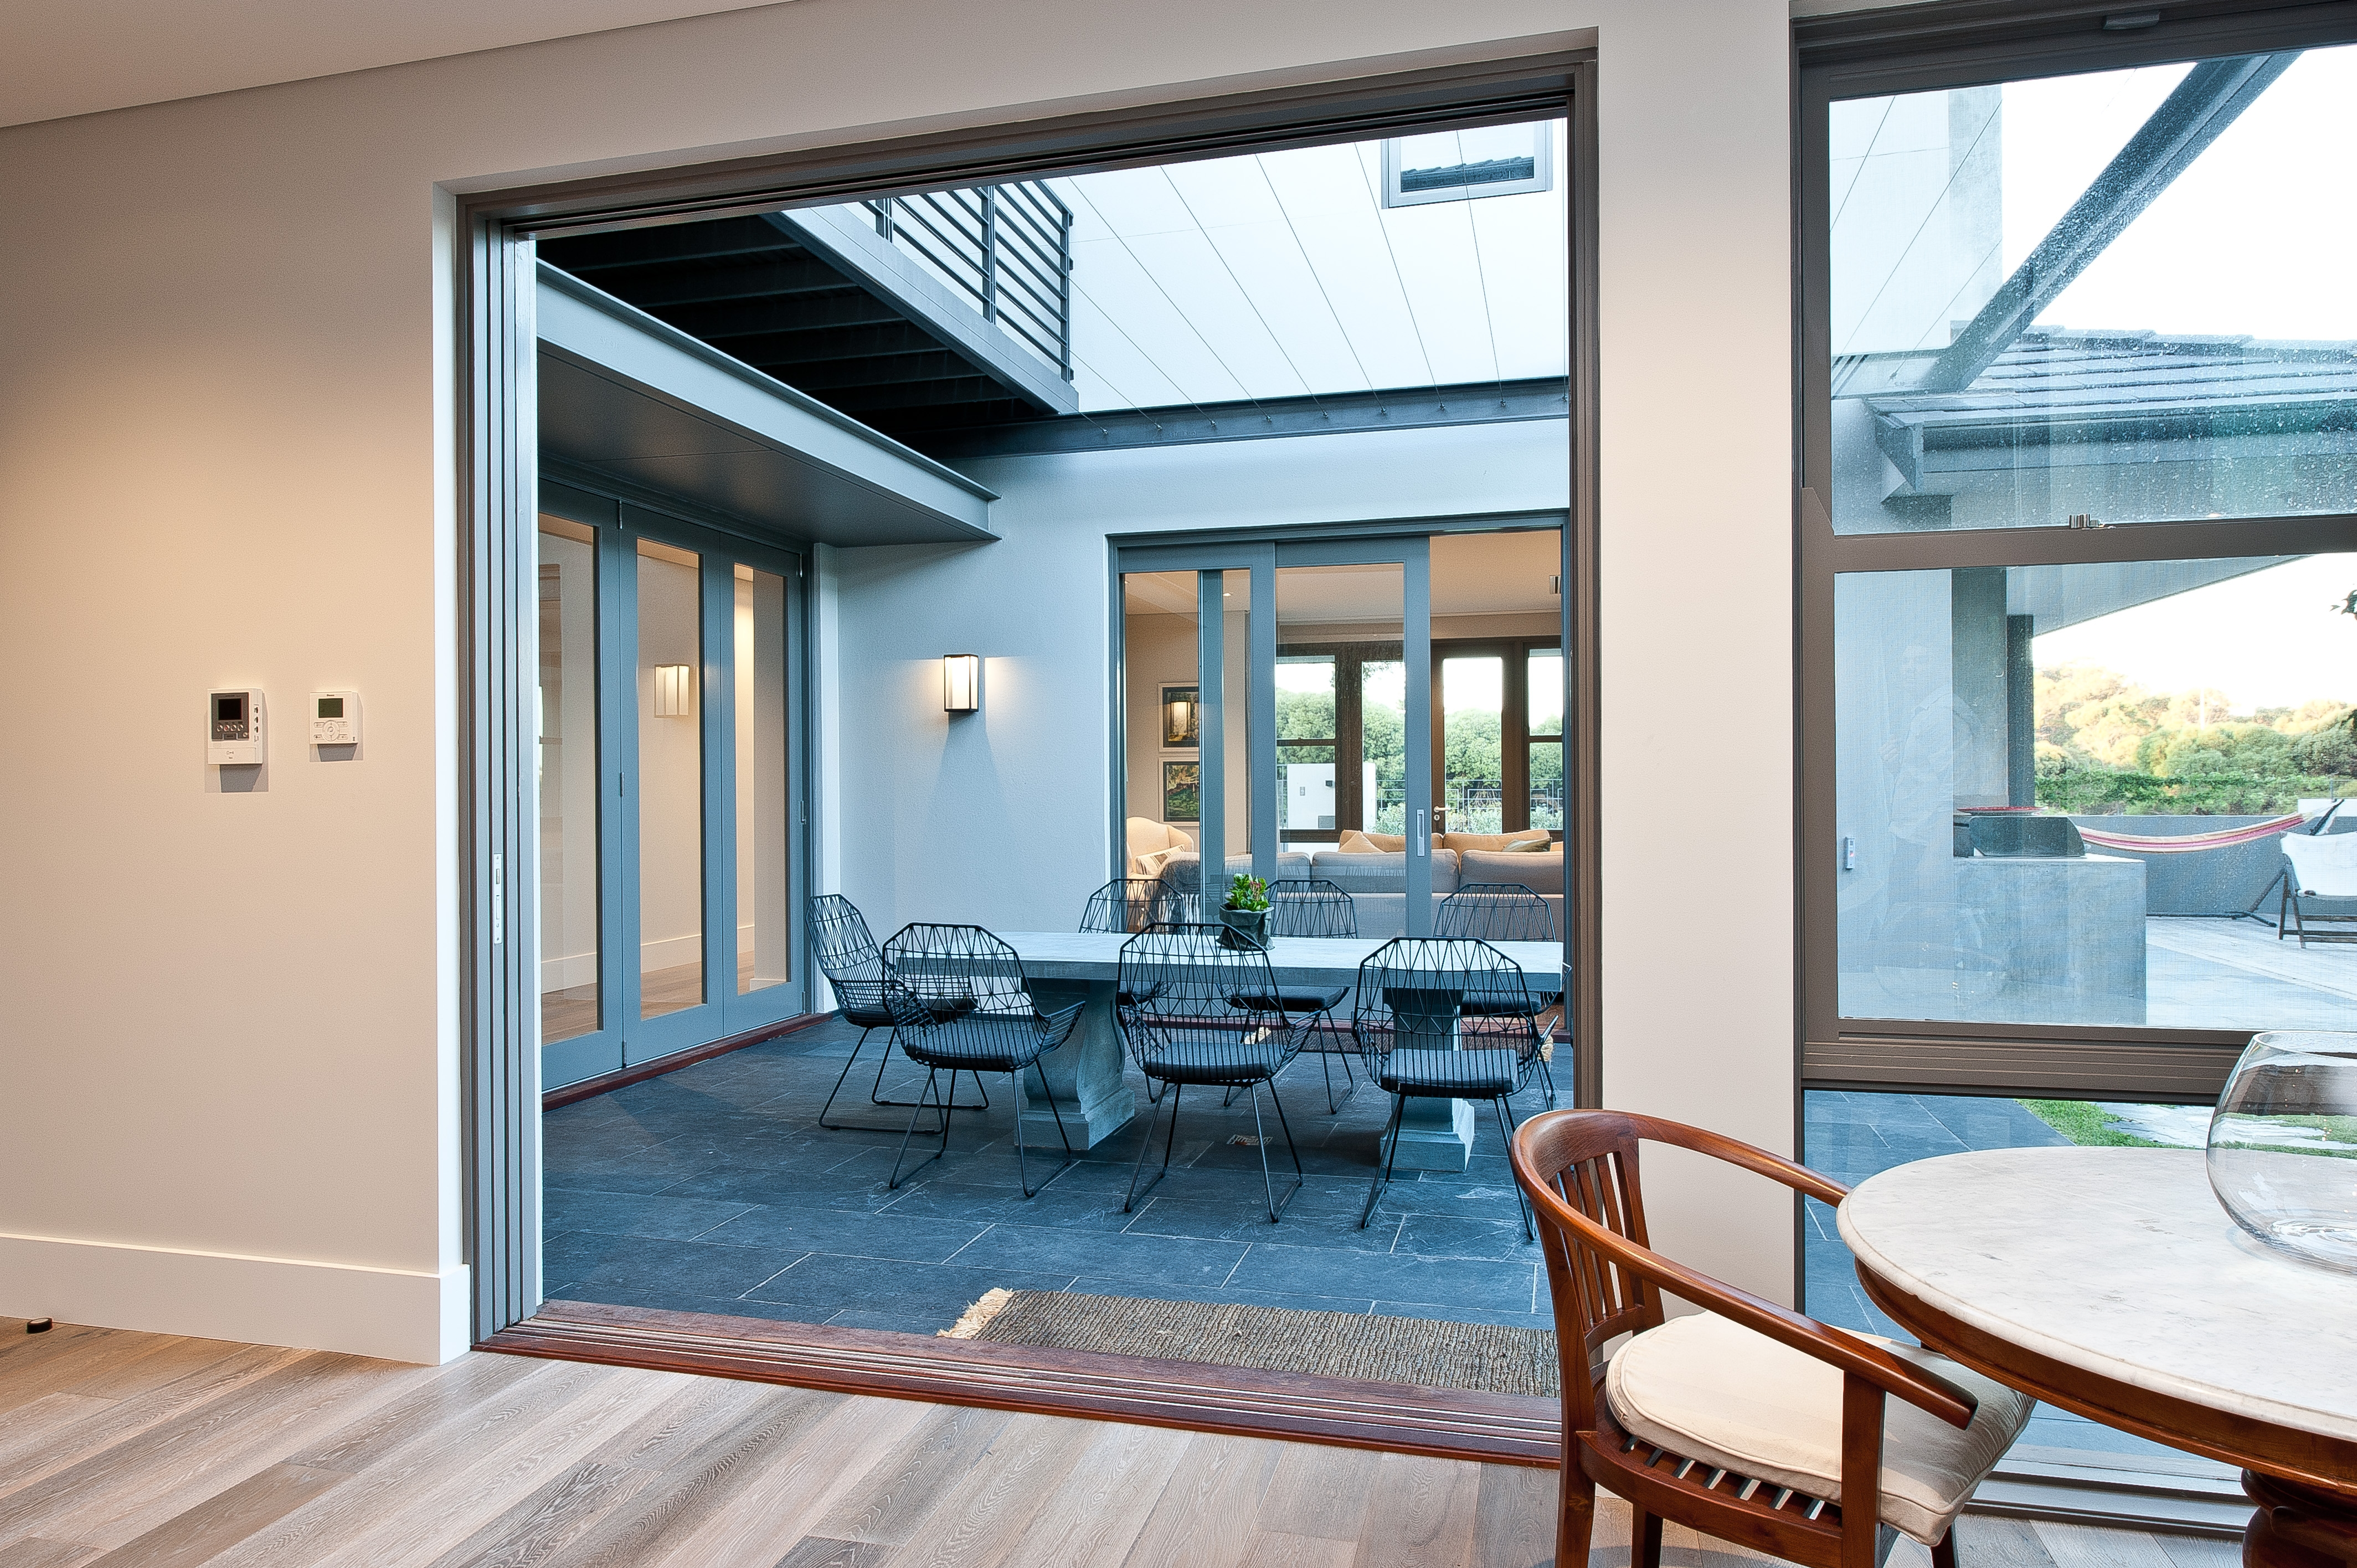 Sliding Glass Door Into Wall4256 X 2832